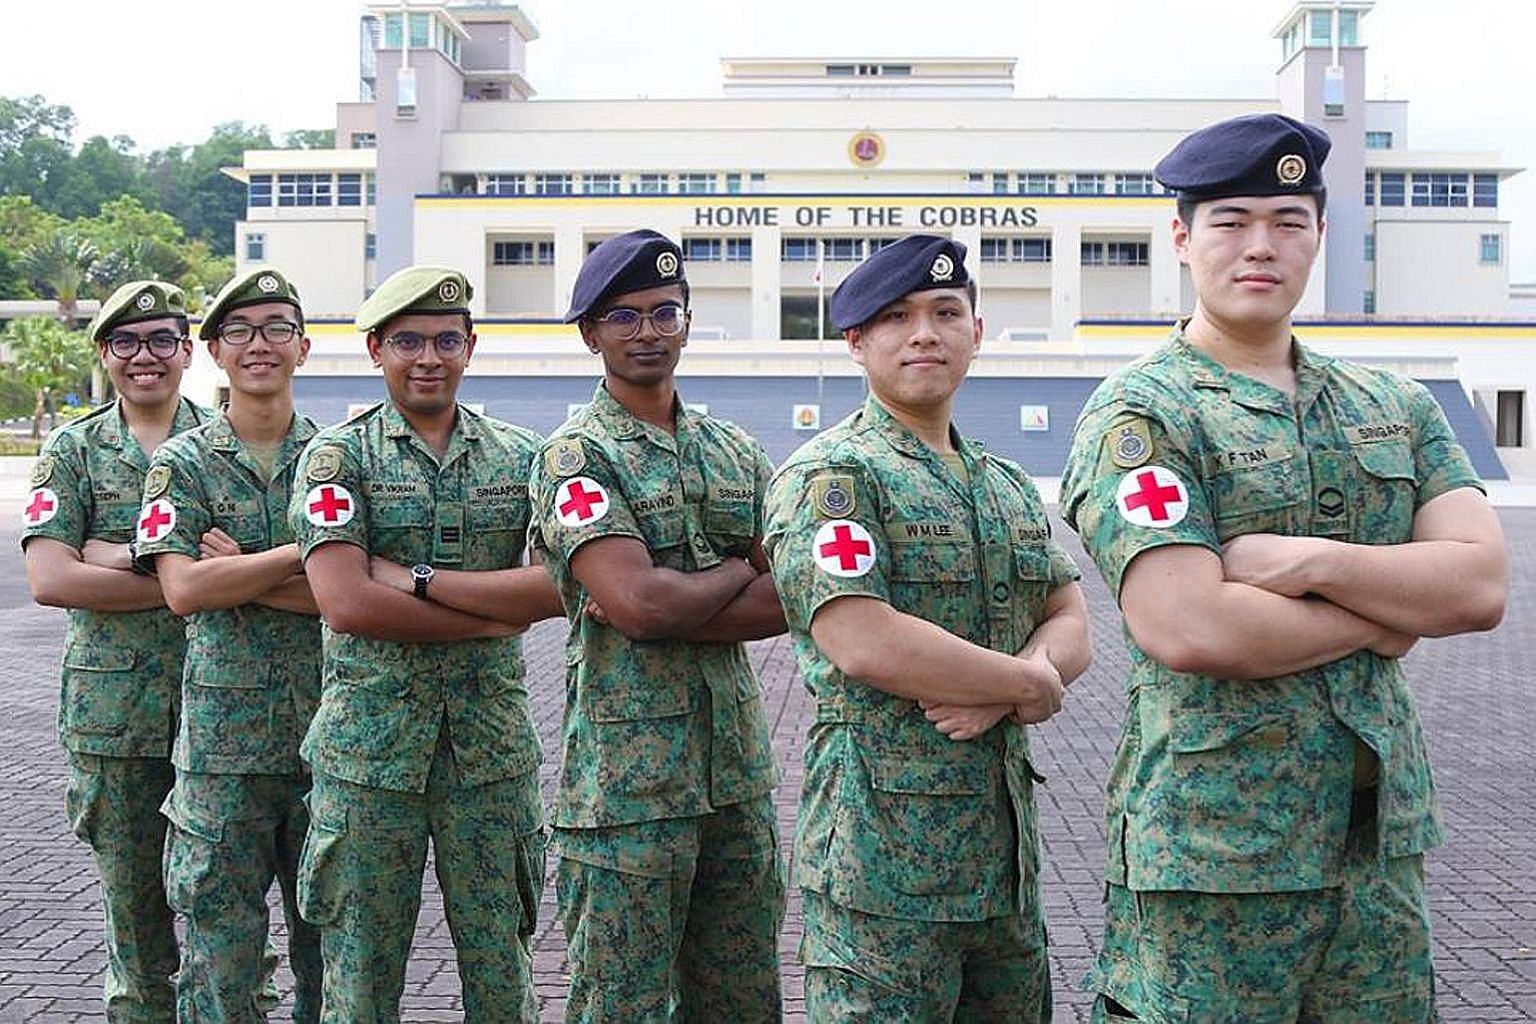 (From left) Cpl Joseph Andrei Aczon Dacanay, 3SG Ni Xu Gang Metta, Cpt (Dr) Vikram Manian, Cpl B. Aravind Krishna, LCP David Lee Wei Ming and Cpl Kinson Tan Kai Feng went to the aid of the injured man.